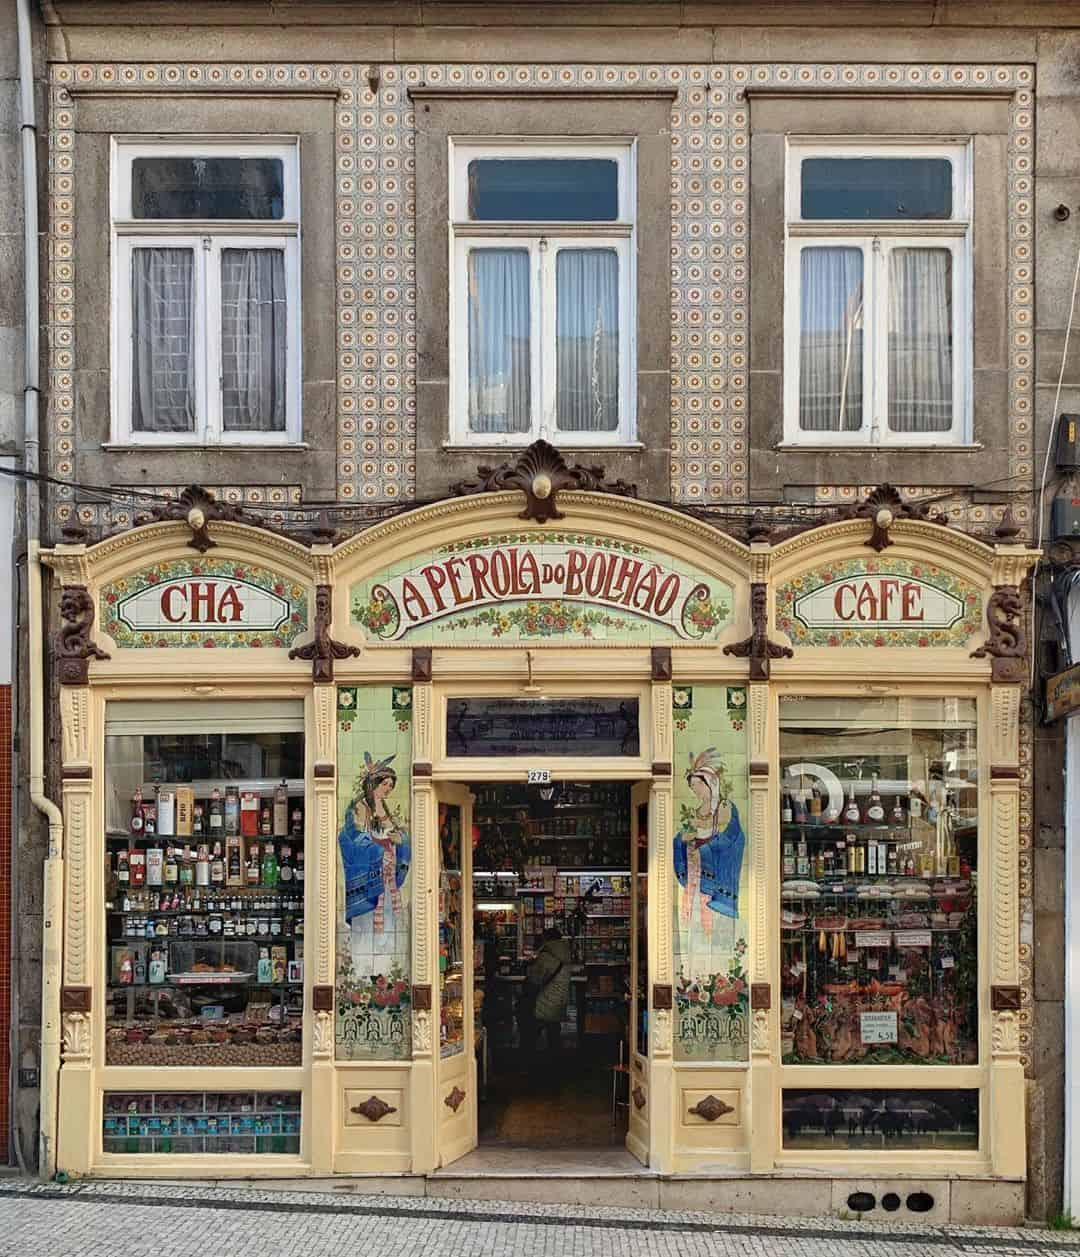 Stores in Porto have beautiful facades